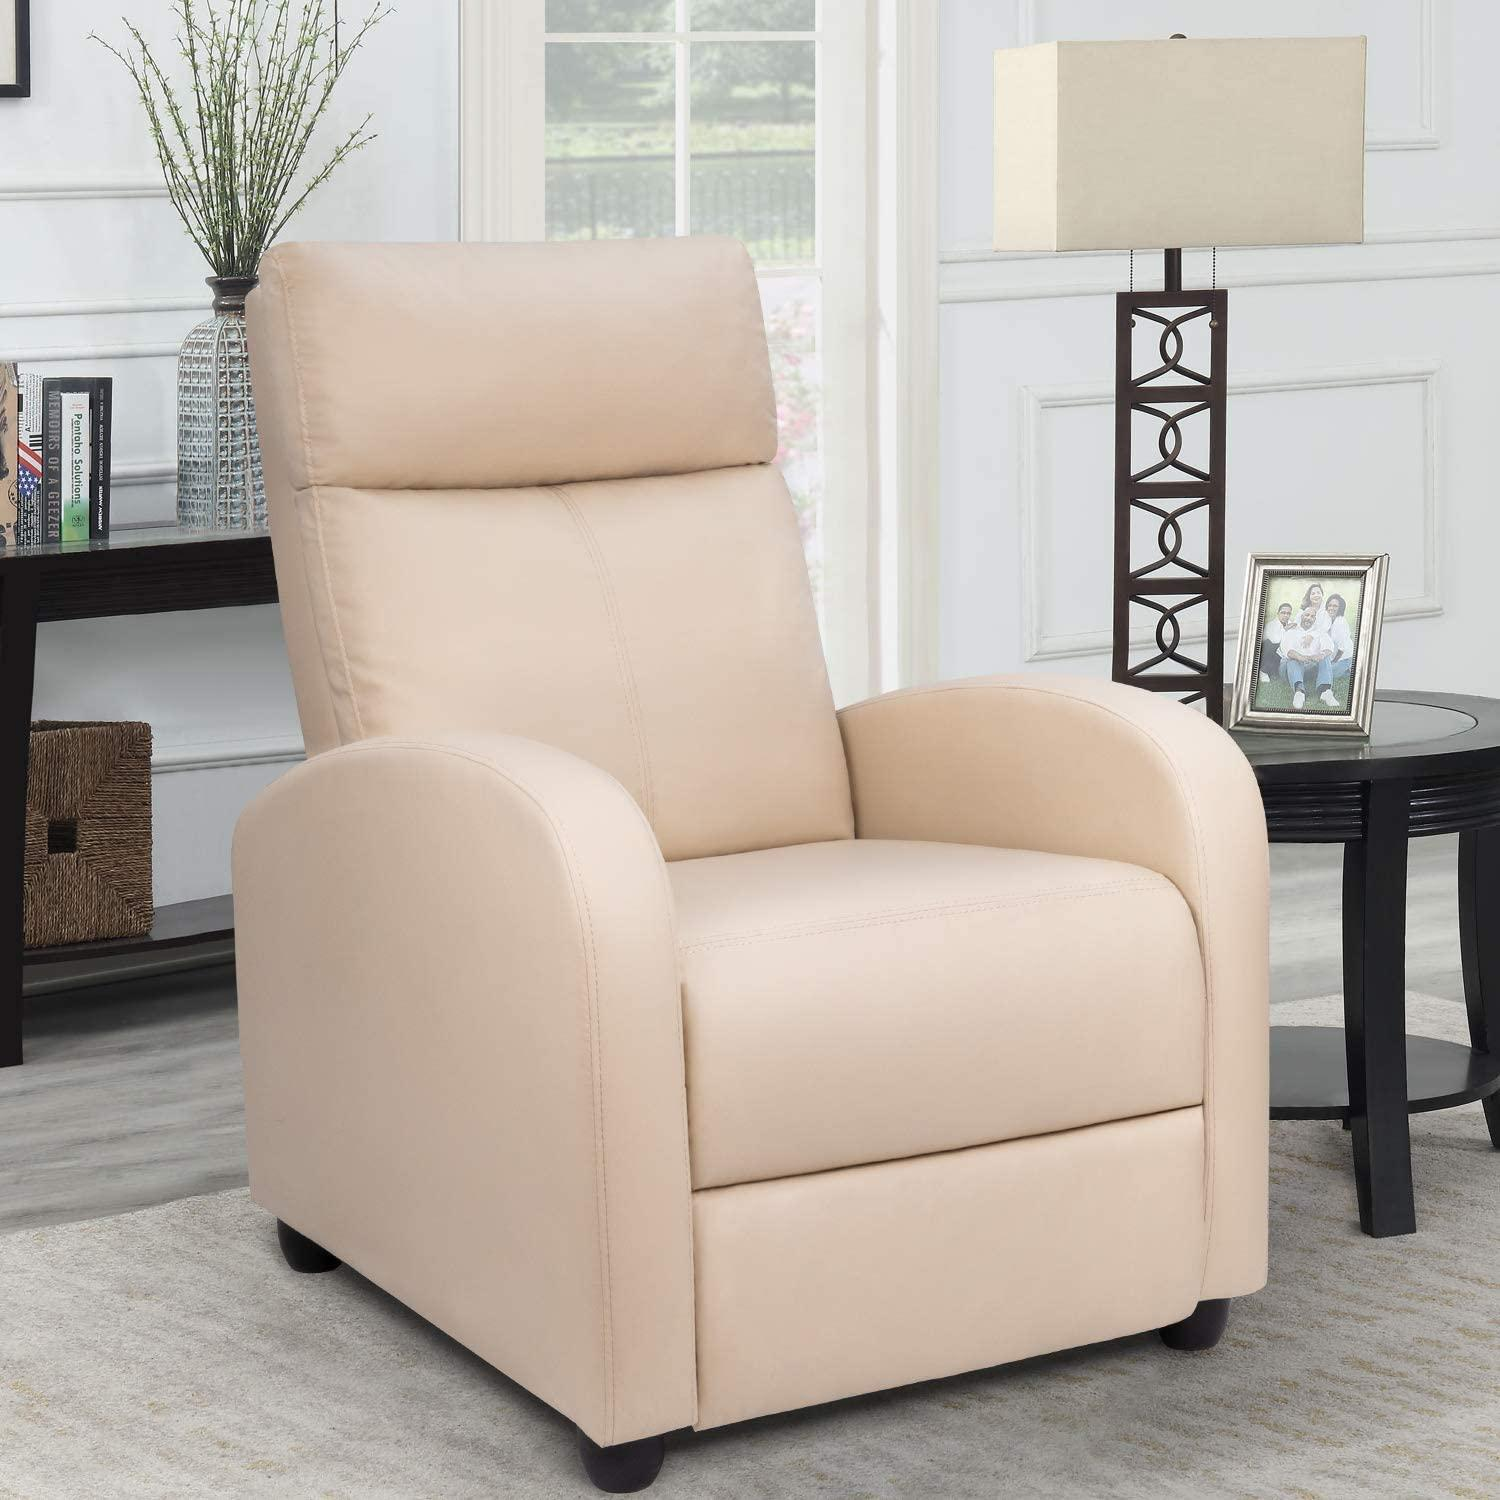 homall single recliner comfortable reading chairs for bedroom